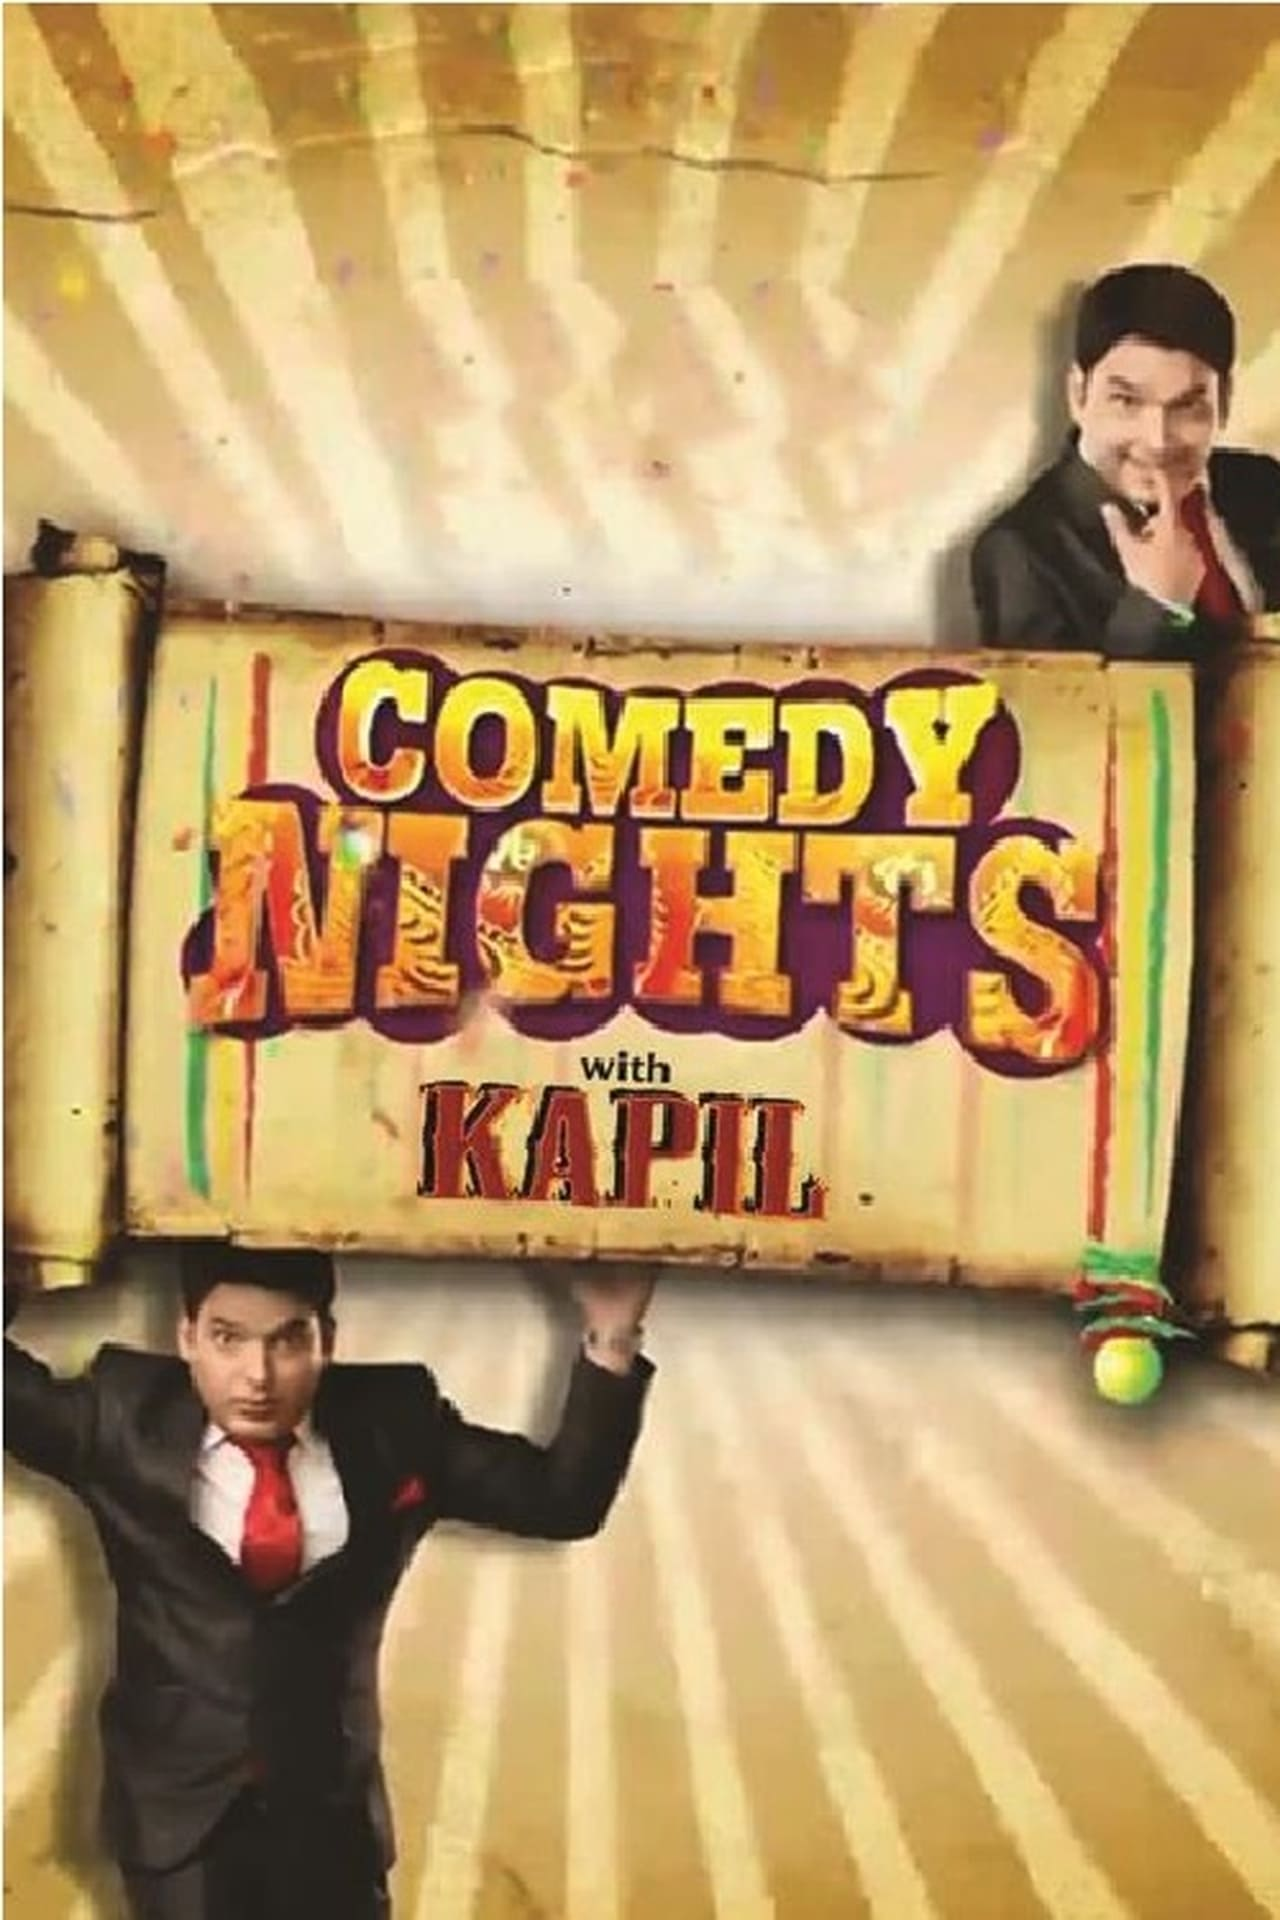 Comedy Nights with Kapil